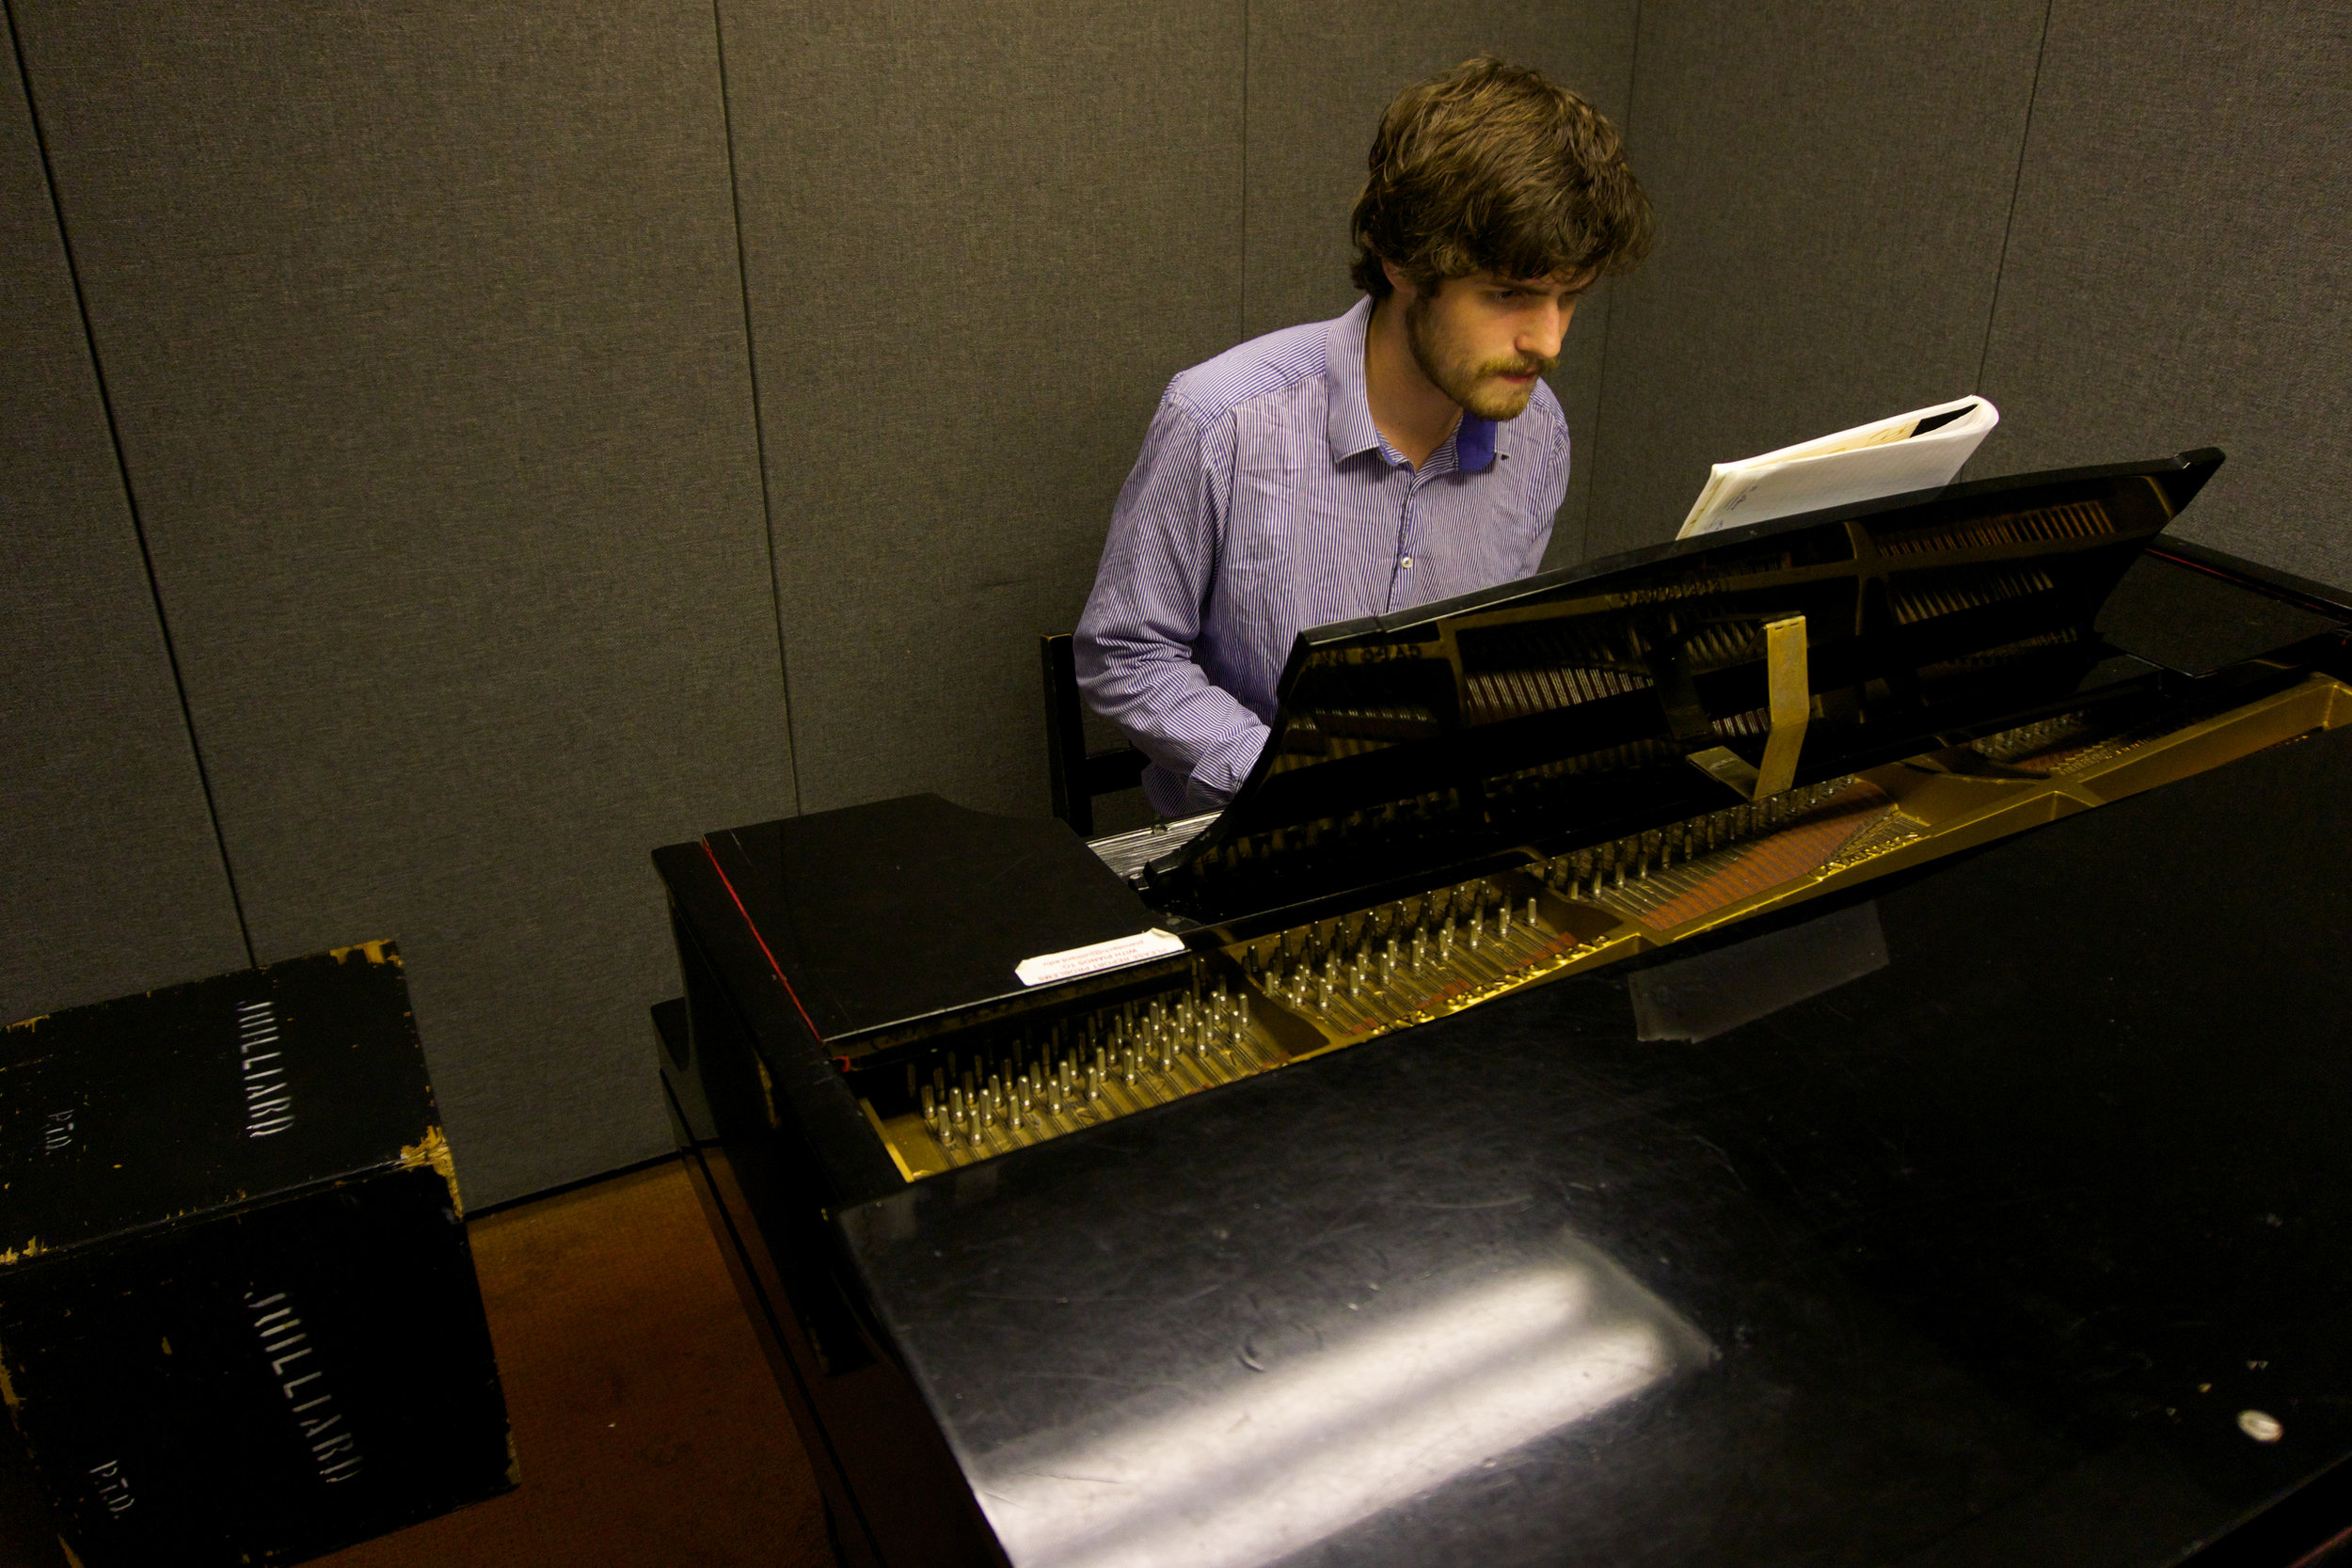 """All of the sudden, he jumps up, runs out of his room into one of the practice rooms and starts translating the notes from his paper to the piano keys. """"I think I found a solution,"""" he says. He is focussed on his music, completely in a different world. Every now and then he'll mumble something like """"I almost have it"""" or """"Shit this doesn't work"""" until he he says """"Oooh now I get it, it's actually a very simple solution, I just tried to make it more complicated than it is."""""""